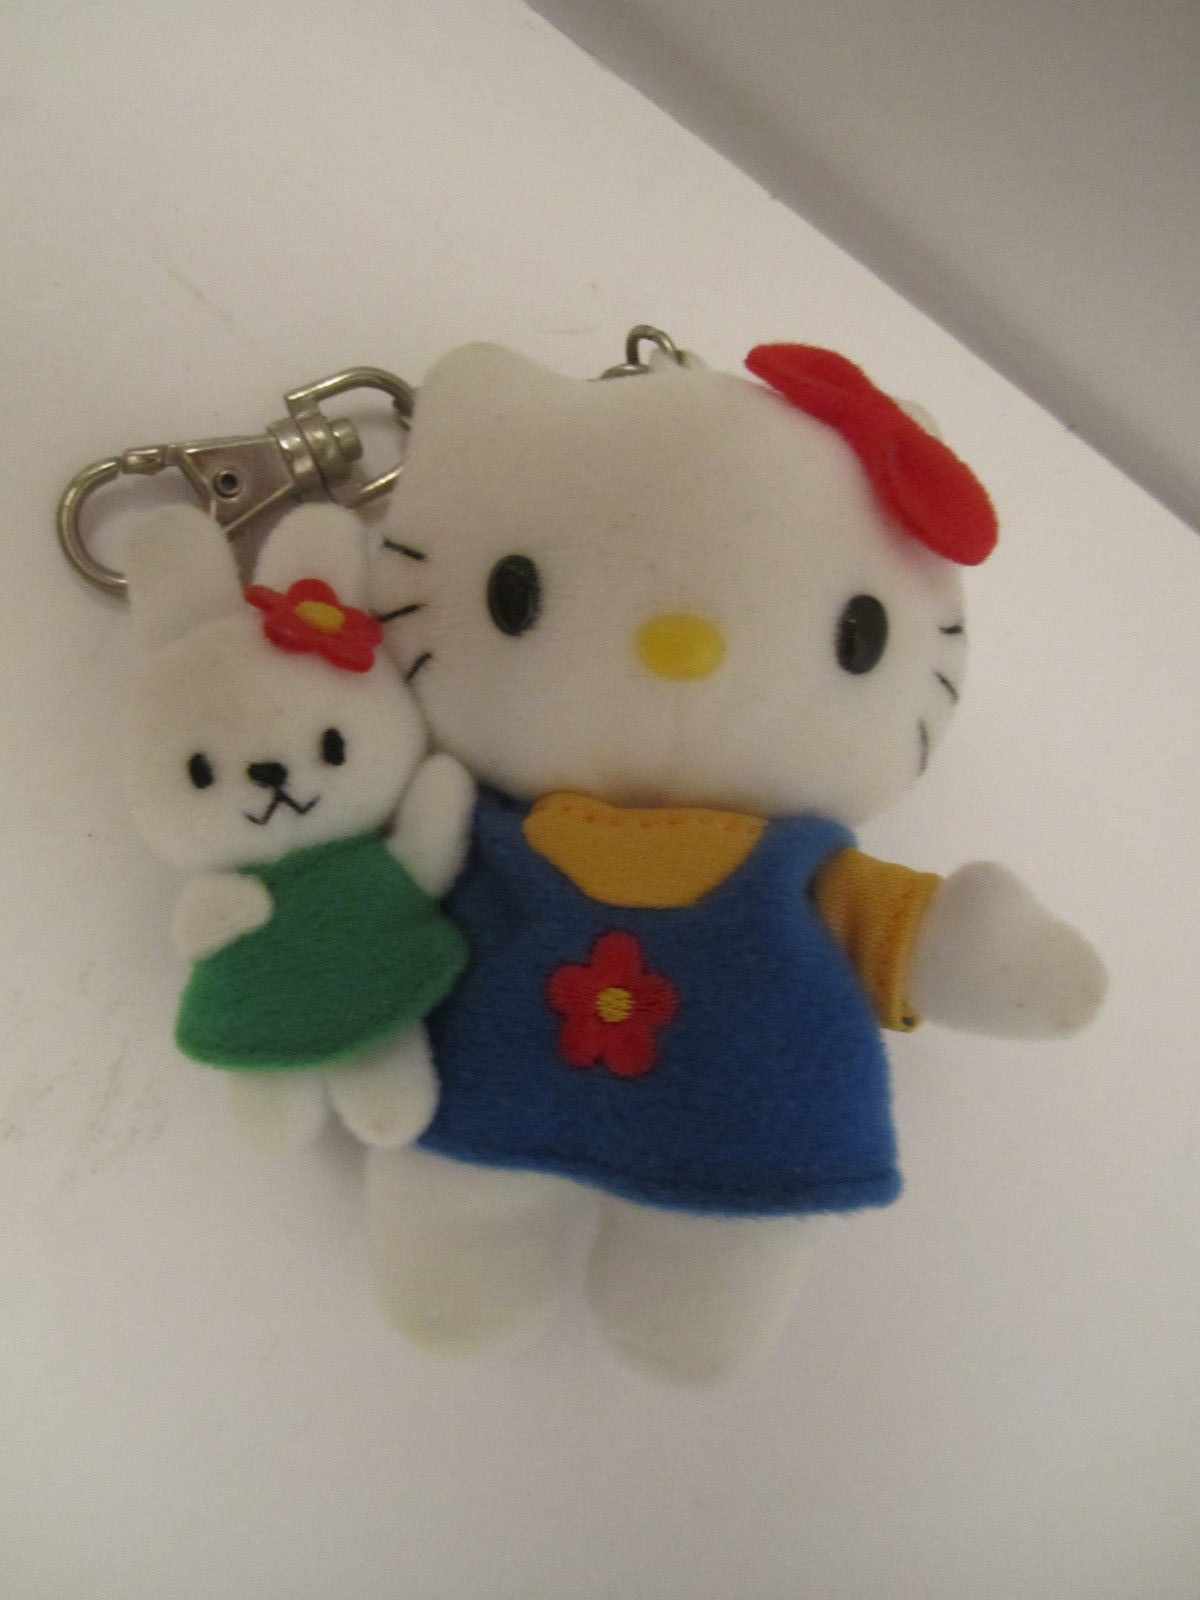 CUTE Trio of Small Plush Hello Kitty Sanrio Stuffed Cat Animal Toys NM Pre-Owned image 4